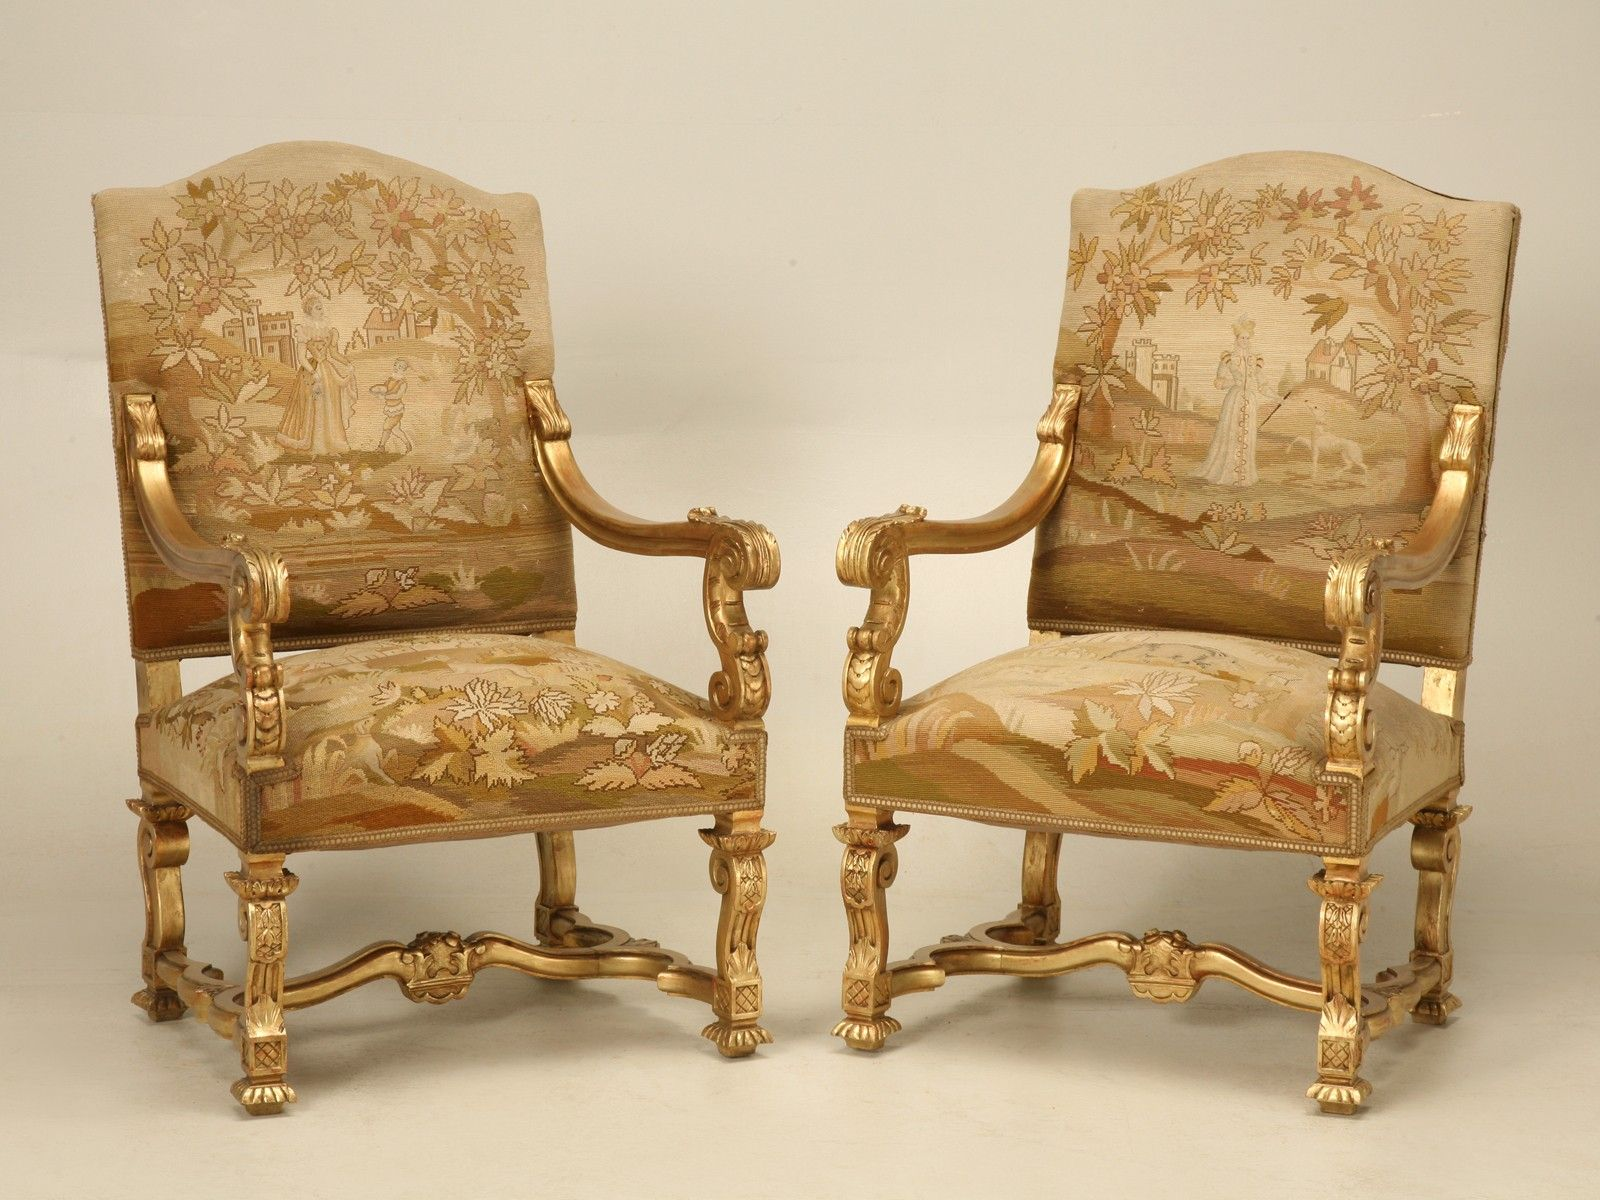 Antique Accent Chairs Authentic Antique Vintage Chairs Old Plank French Gilded Throne